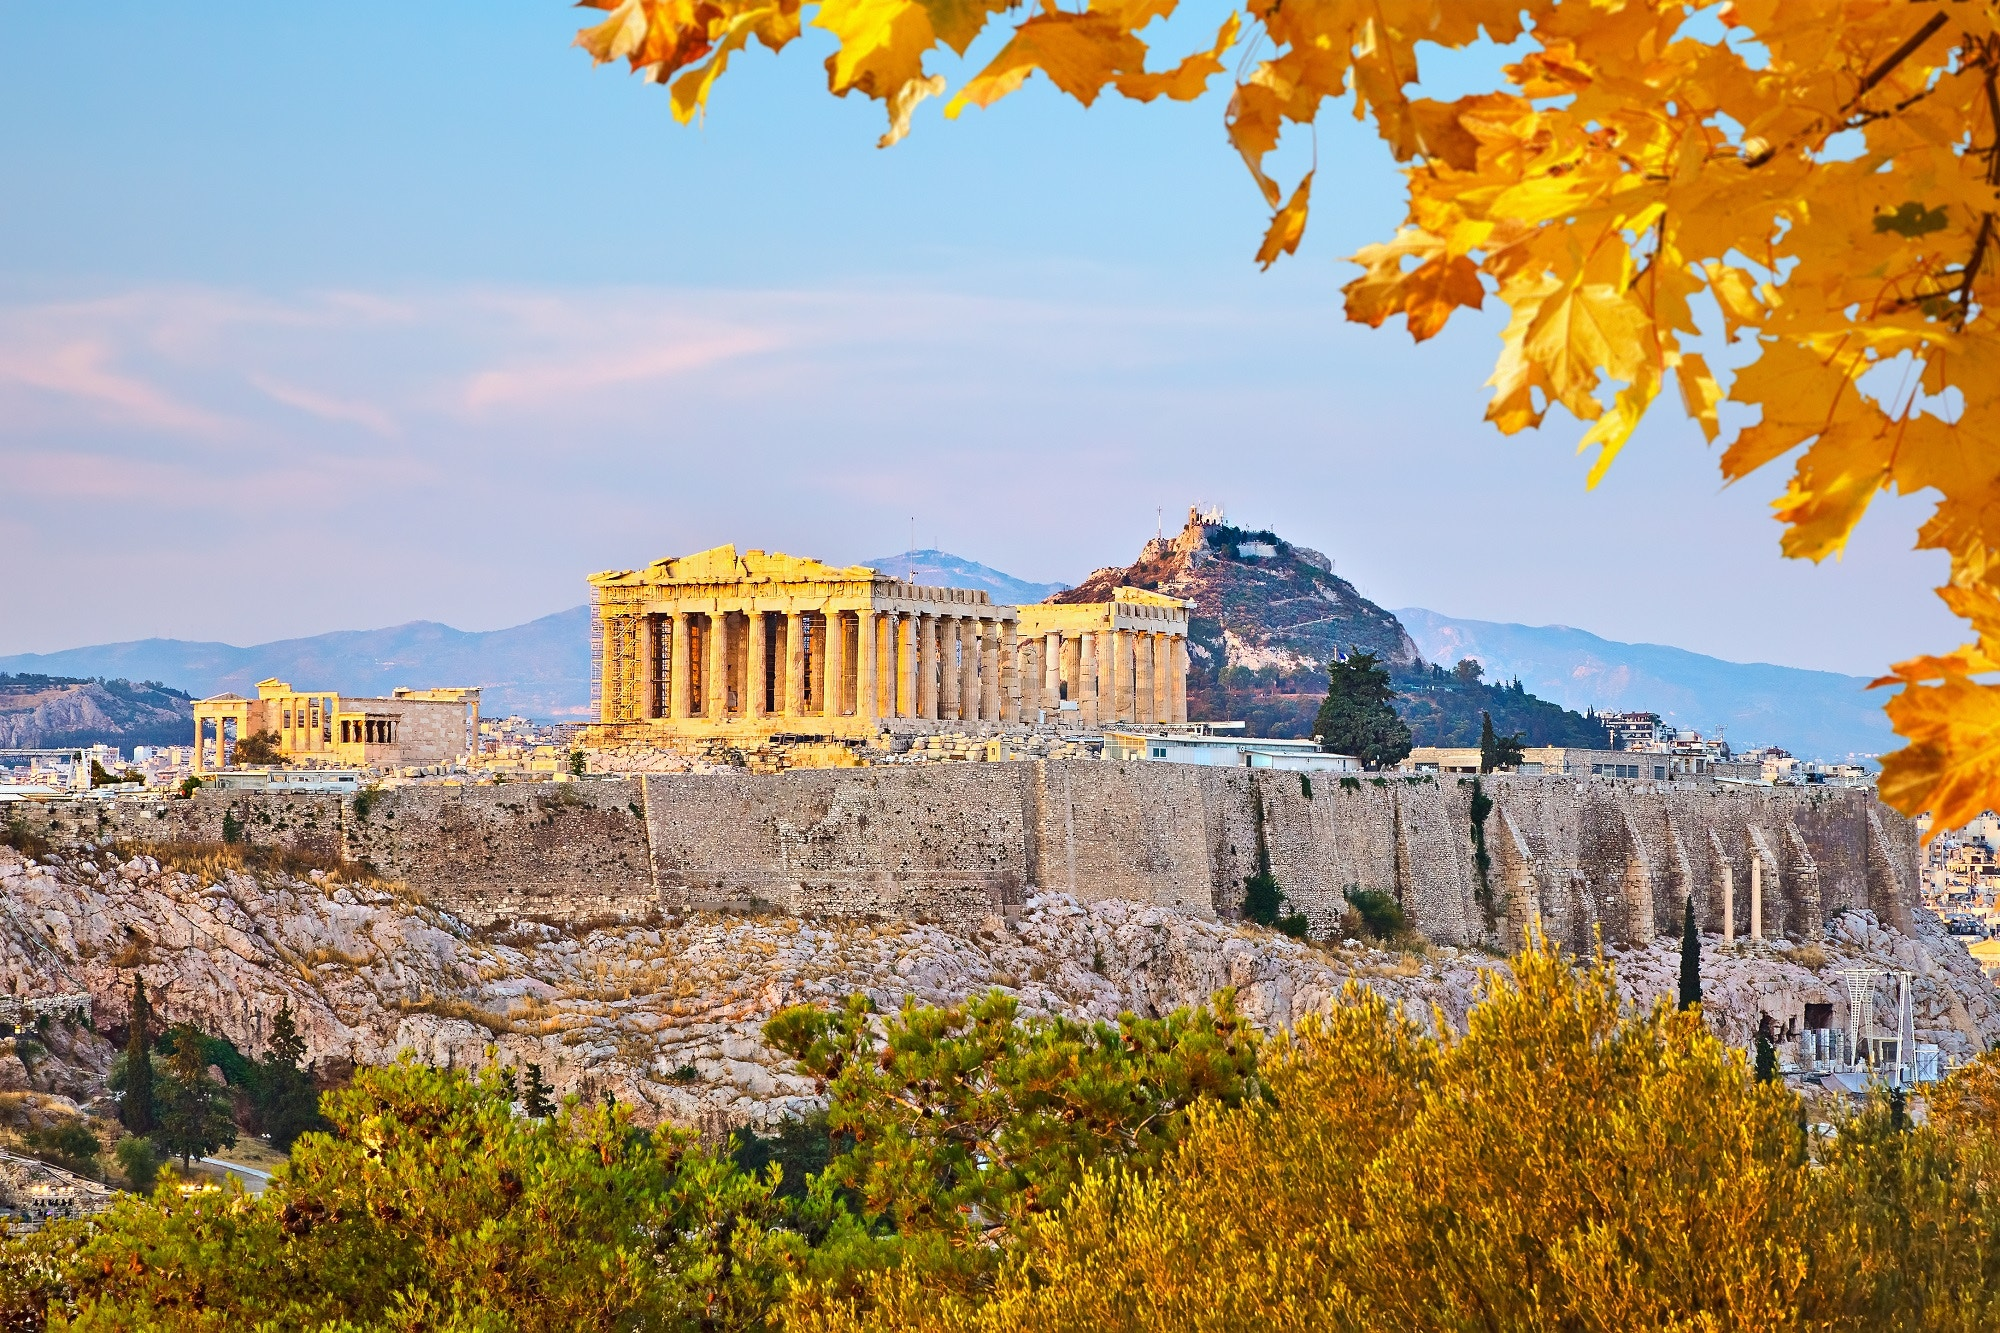 View of the Acropolis at sunset in Athens, Greece